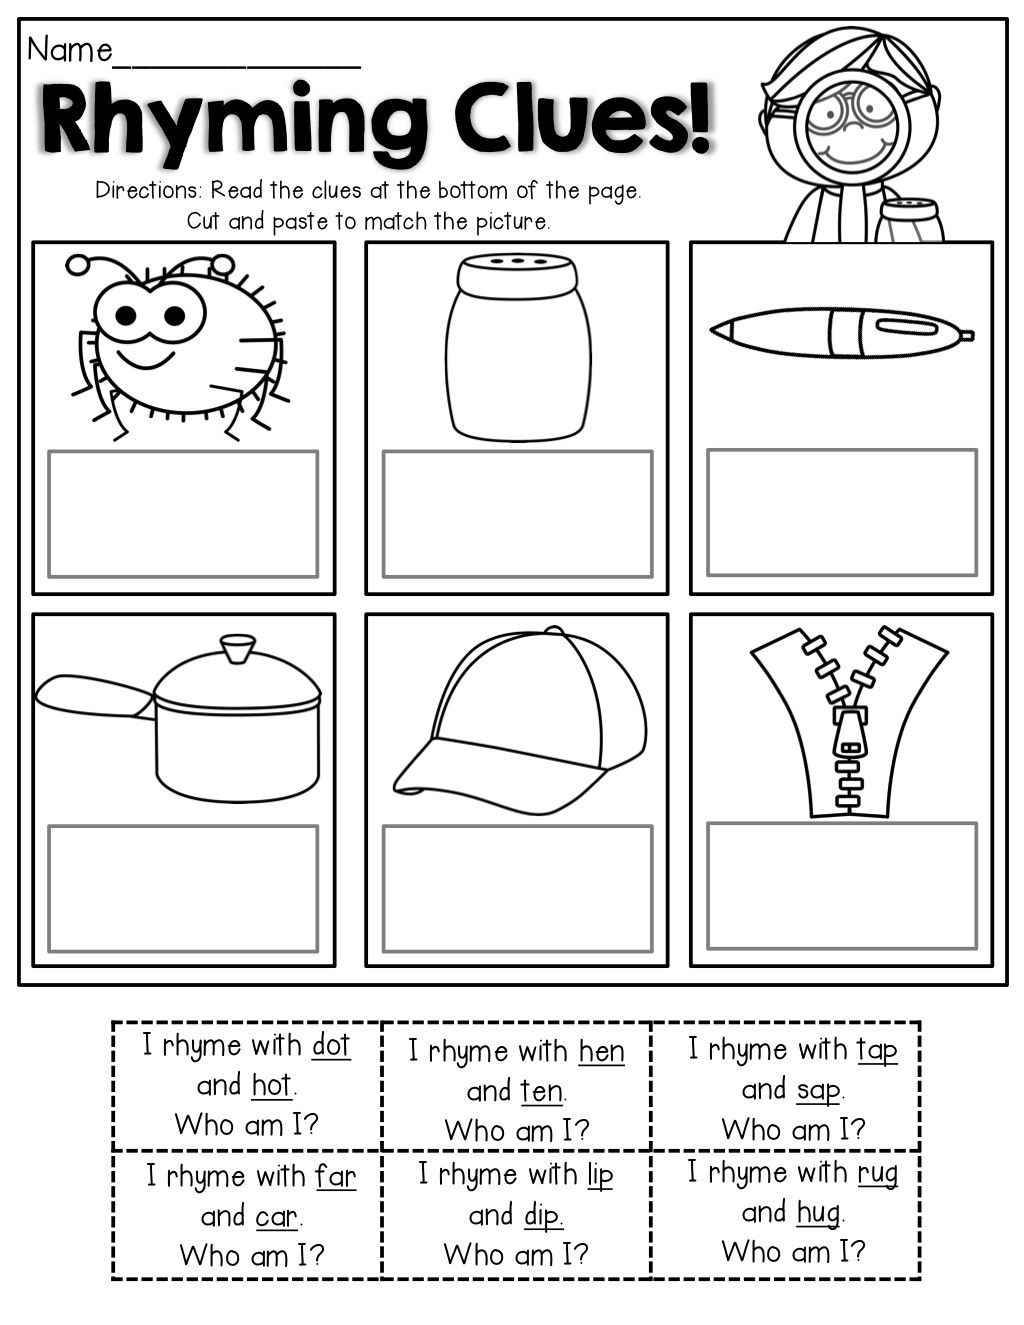 Rhyming Words Worksheet For Kindergarten In